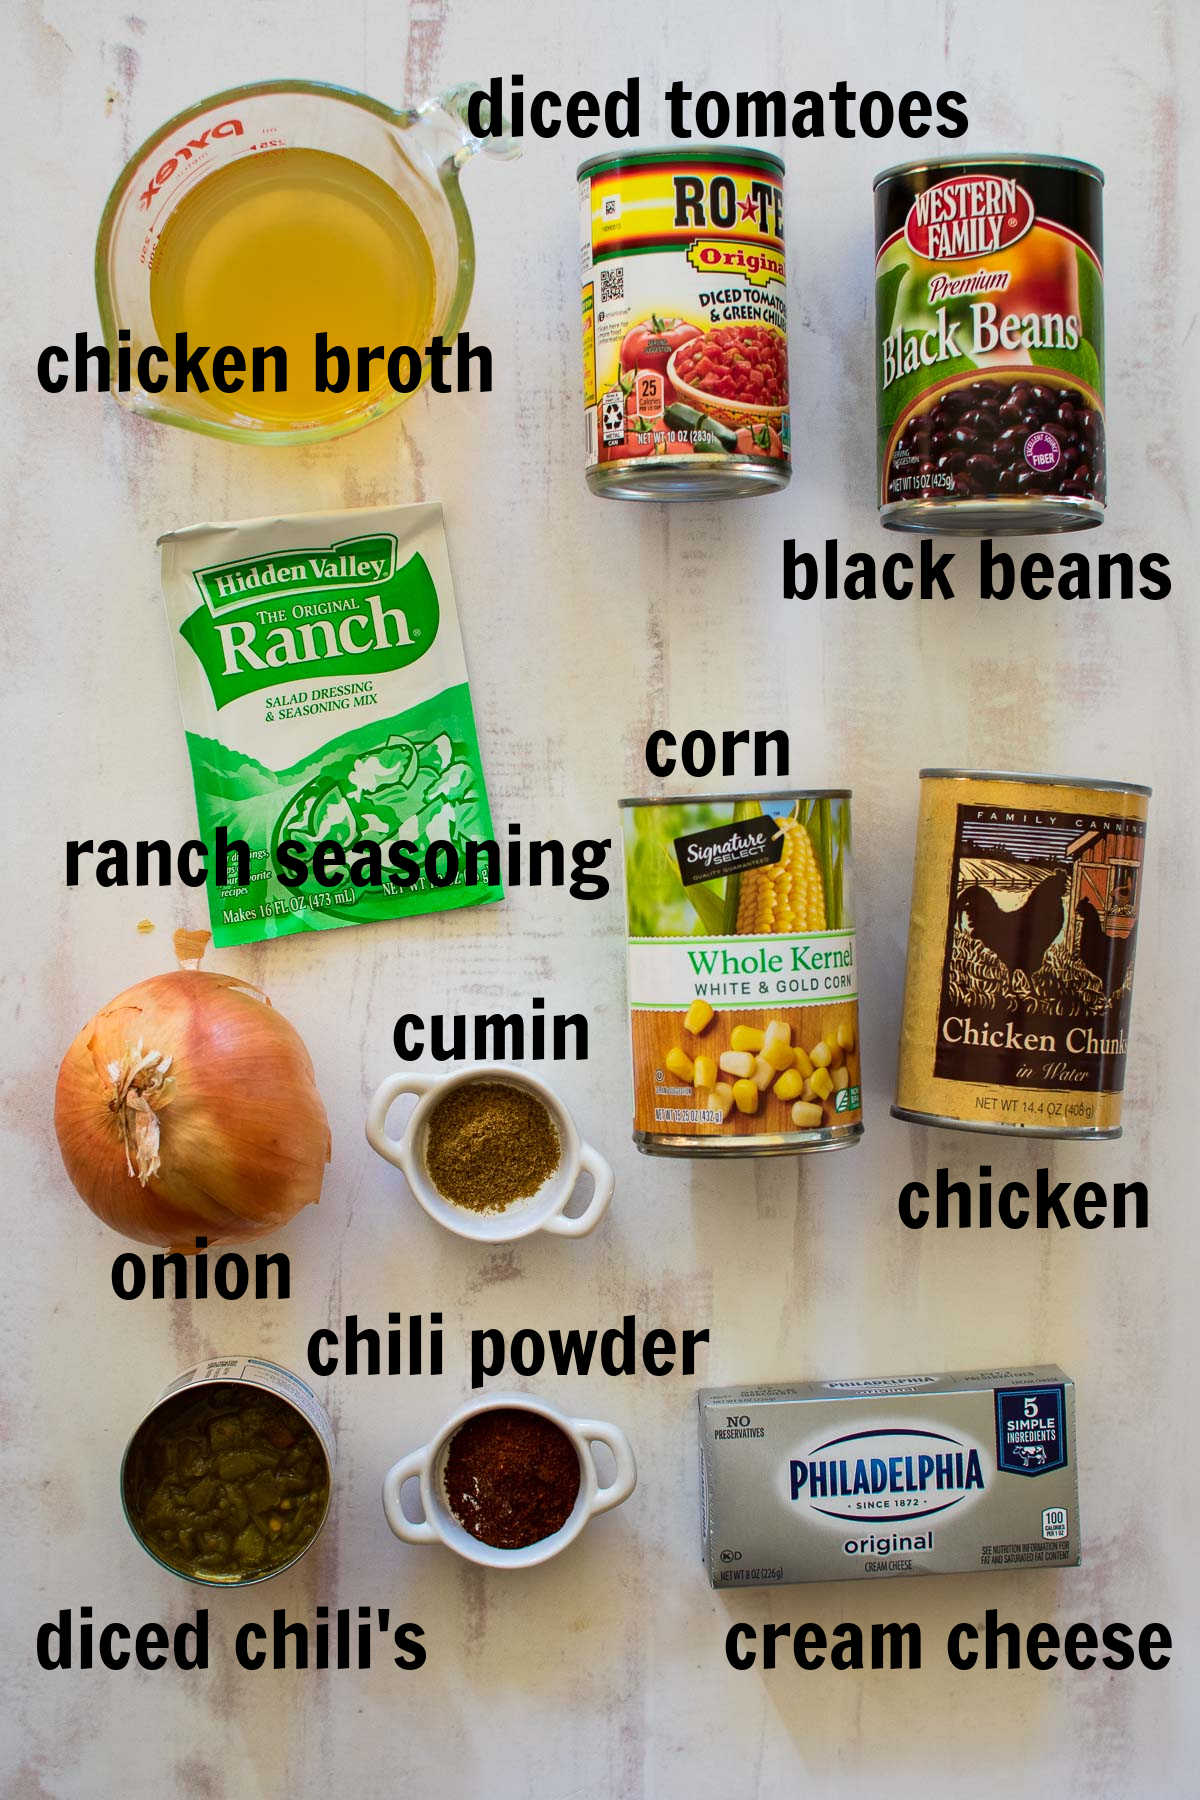 Ingredients to make chicken chili with cream cheese.